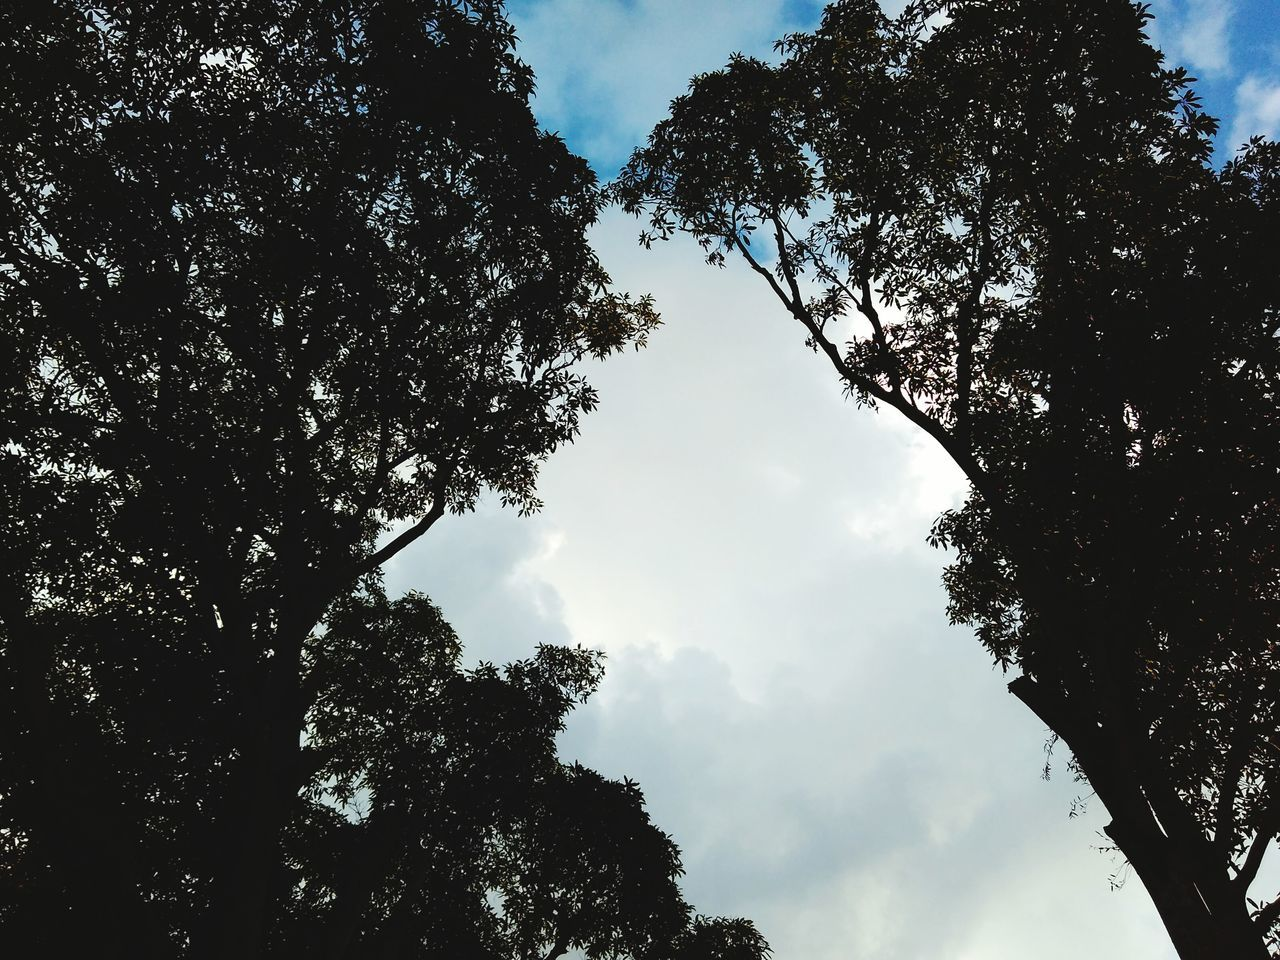 tree, low angle view, sky, nature, cloud - sky, beauty in nature, day, no people, growth, outdoors, silhouette, branch, tranquility, scenics, forest, height